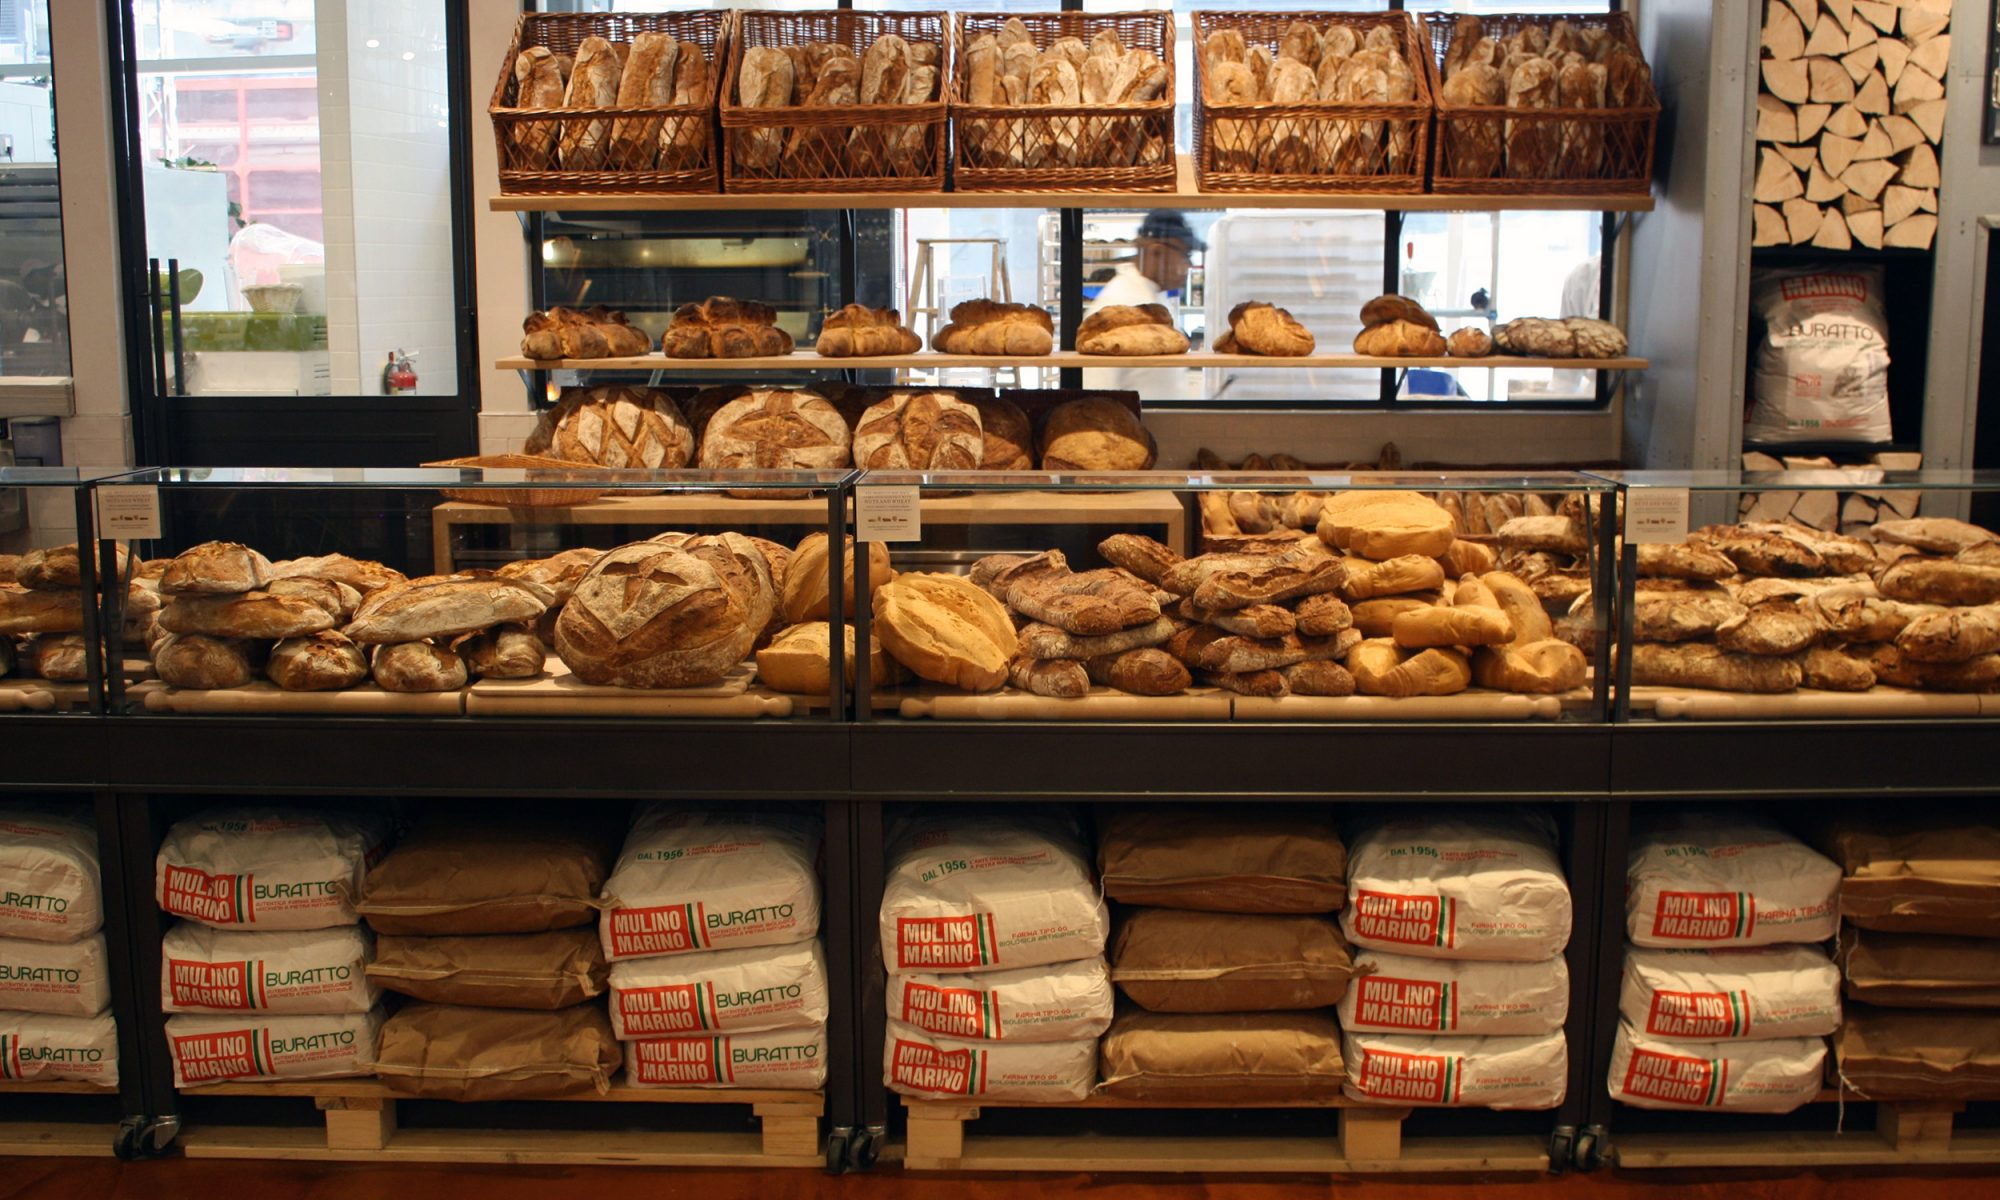 EC: The New Eataly NYC Downtown Is All About Breakfast